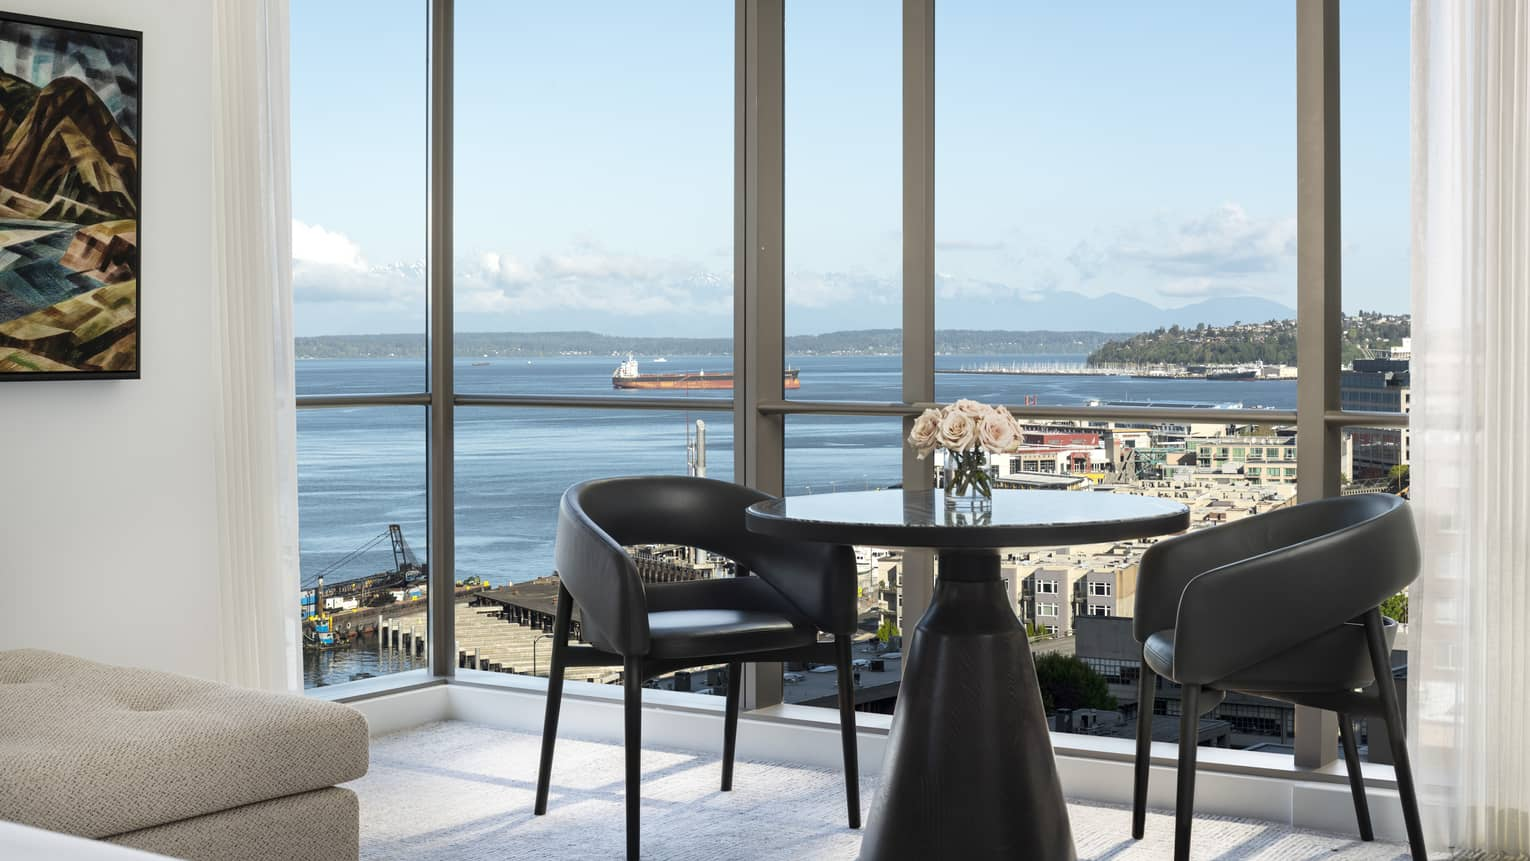 A table in the corner of the Prime Bay View Room overlooks the water and colorful buildings below